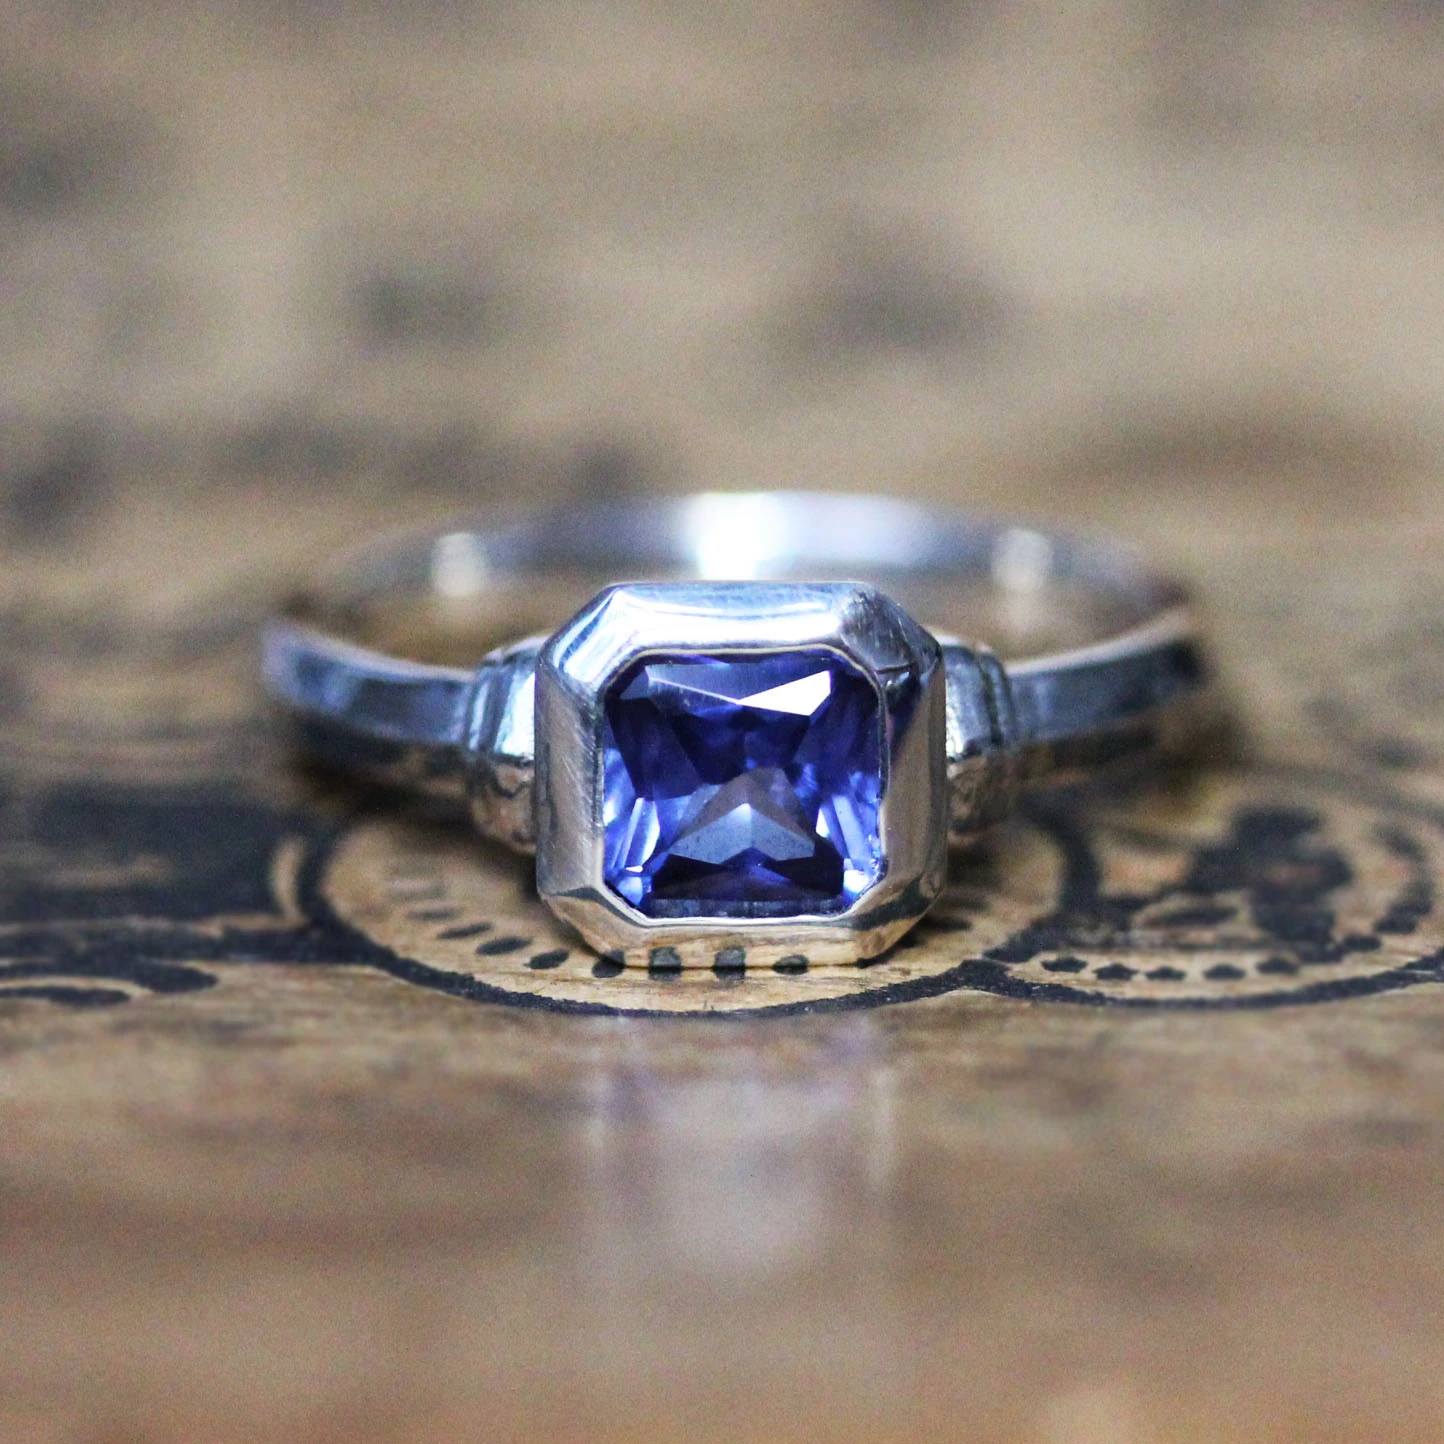 Ethical jewelry options include looking at where gemstones and metal comes from, as well as how it is processed. Look for jewelers with transparency into their supply chain and design practices.